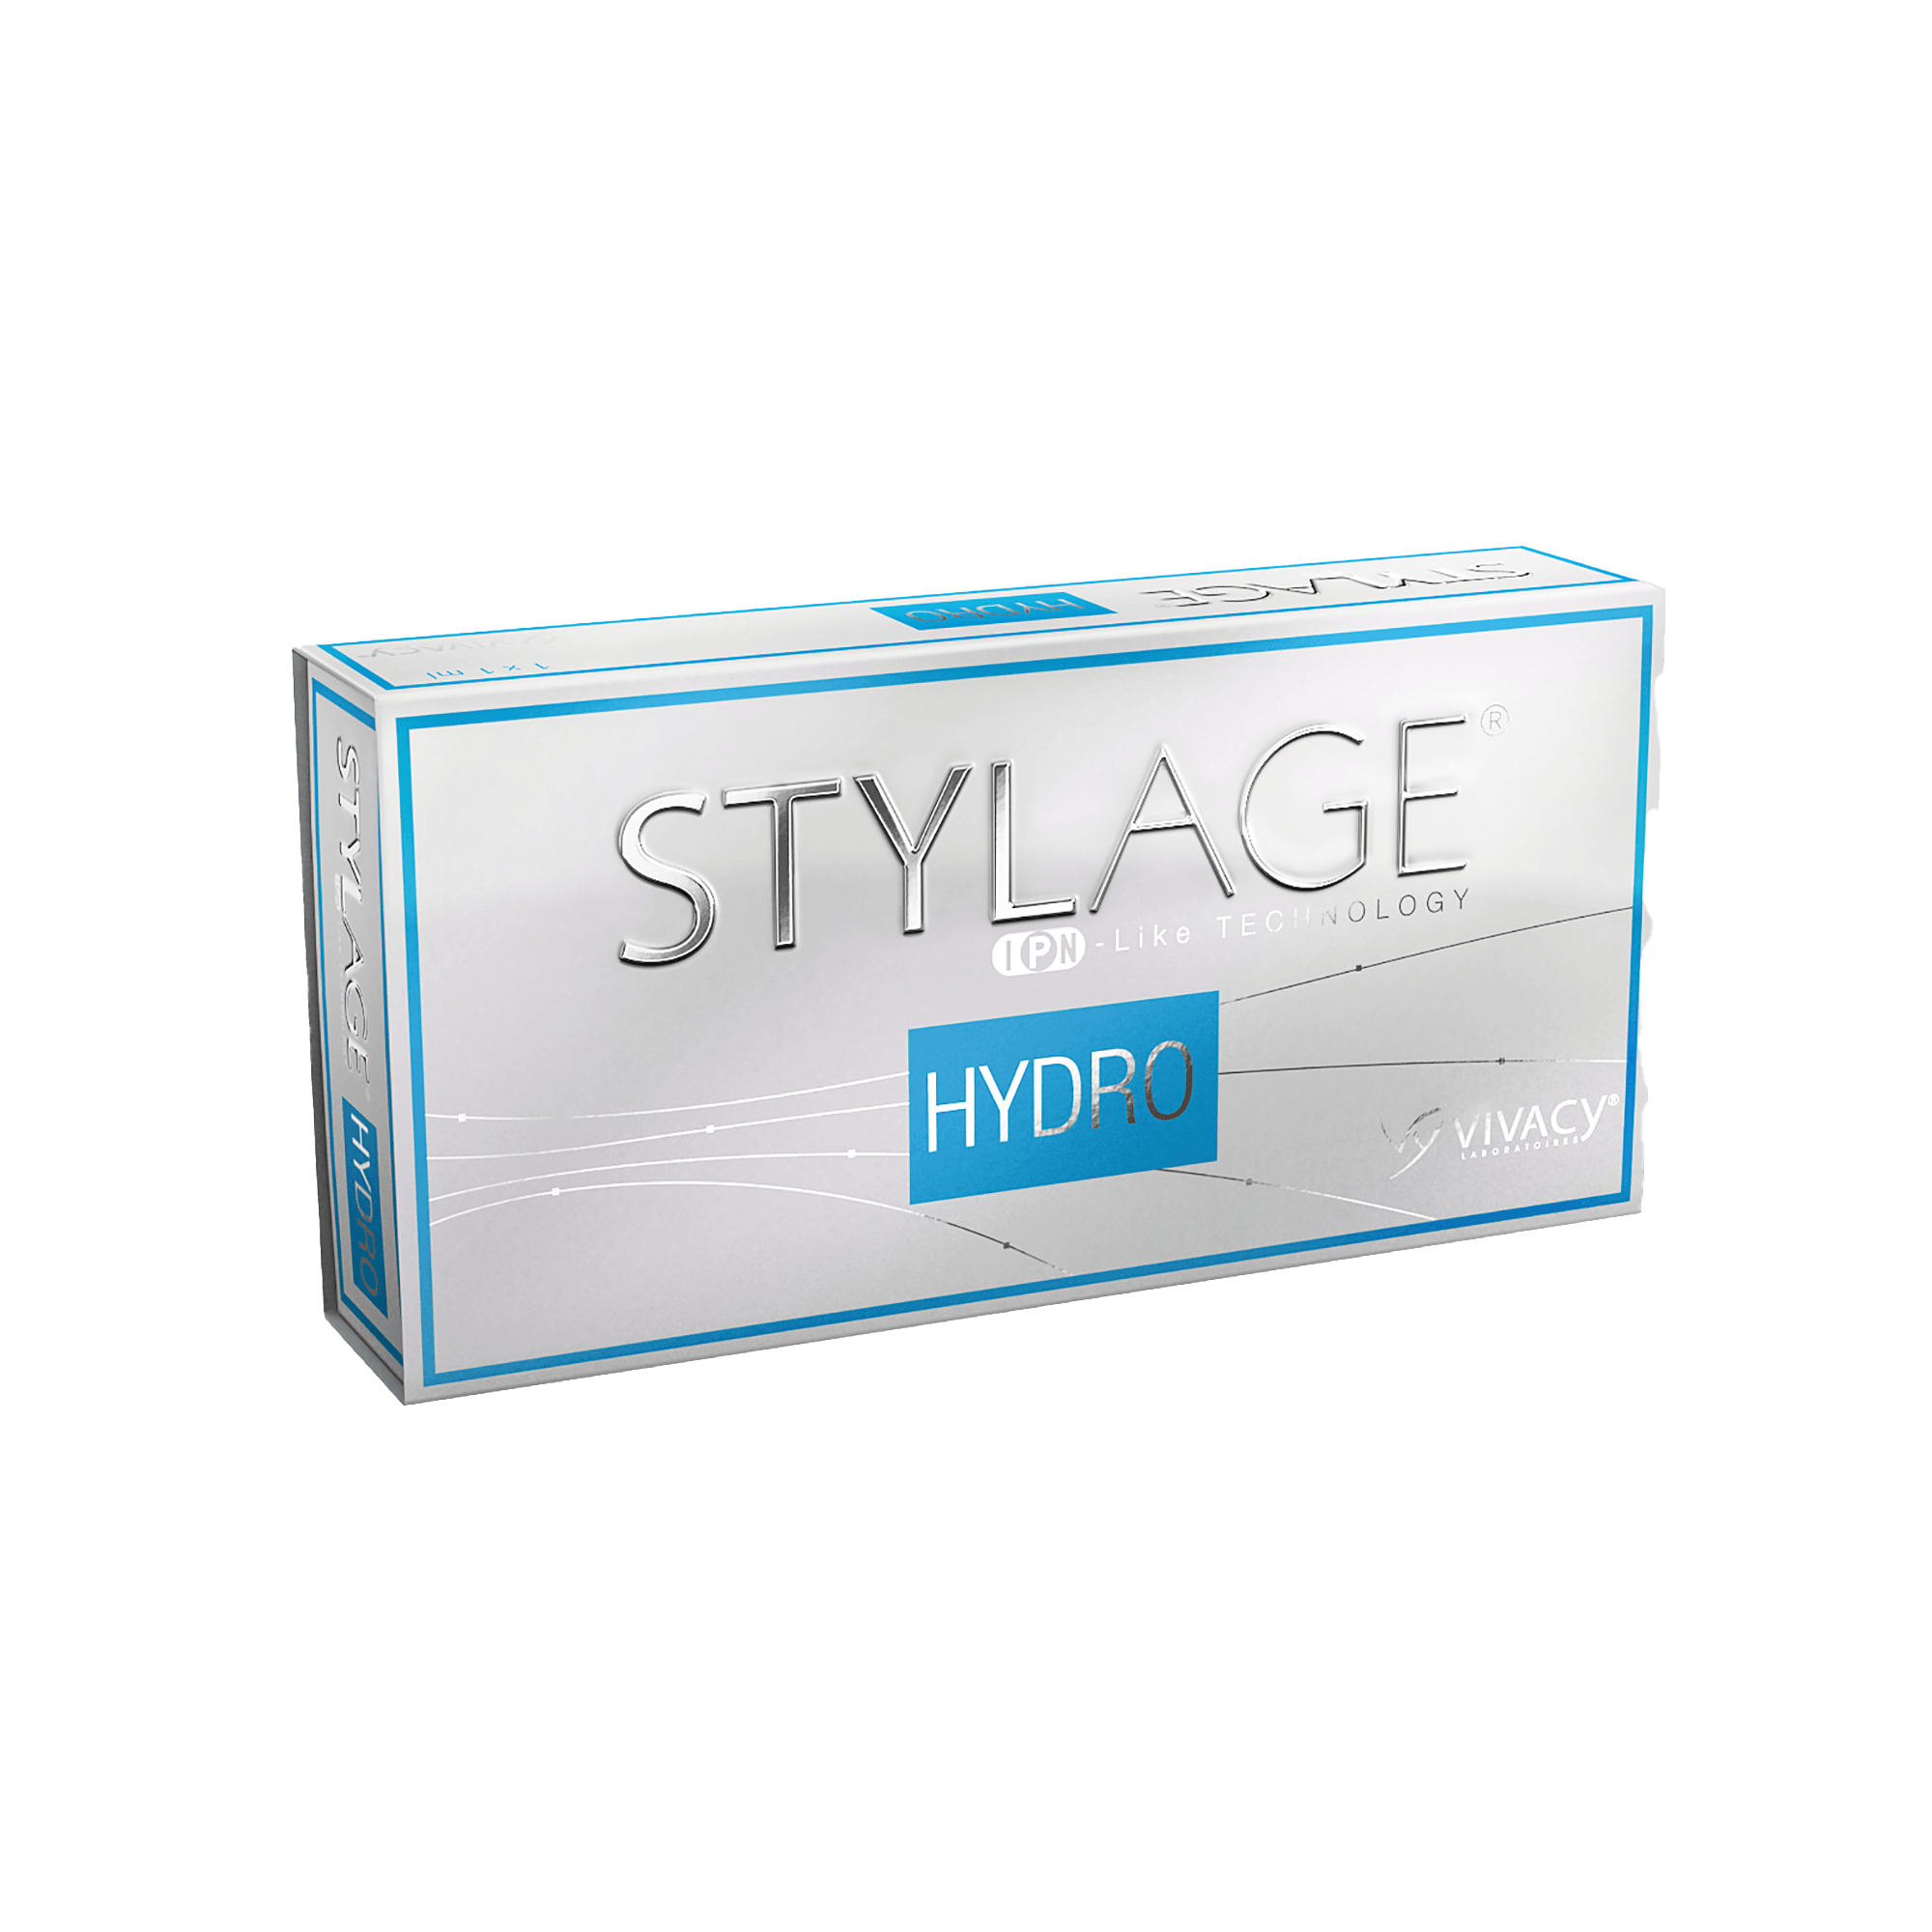 Vivacy - Stylage Hydro - DANYCARE